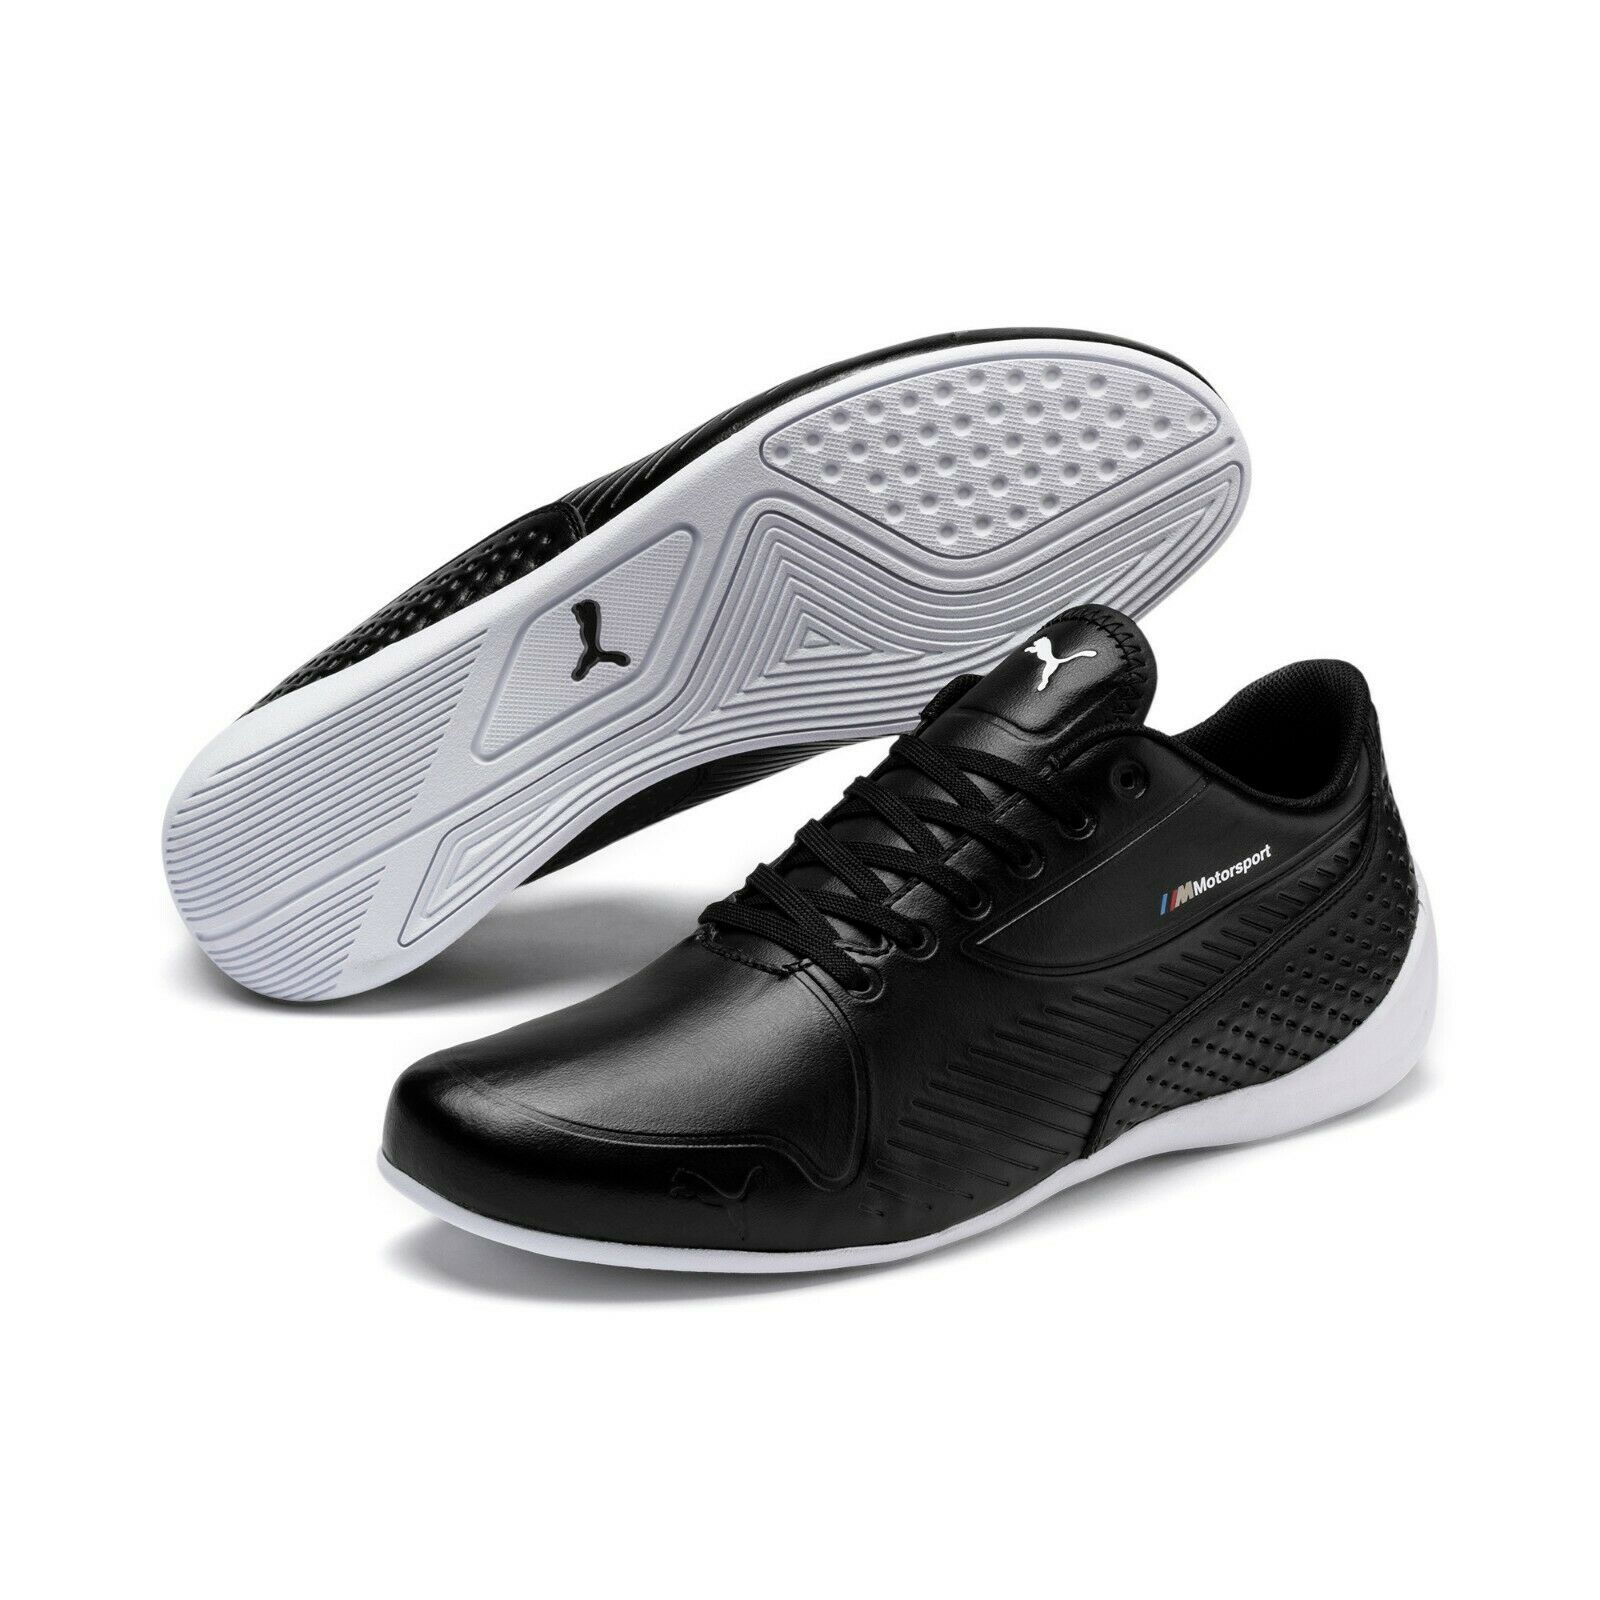 MENS PUMA BMW MS DRIFT CAT 7S ULTRA F1 BLACK MOTORSPORT DRIVING RACING SHOES · $74.99 · Athletic